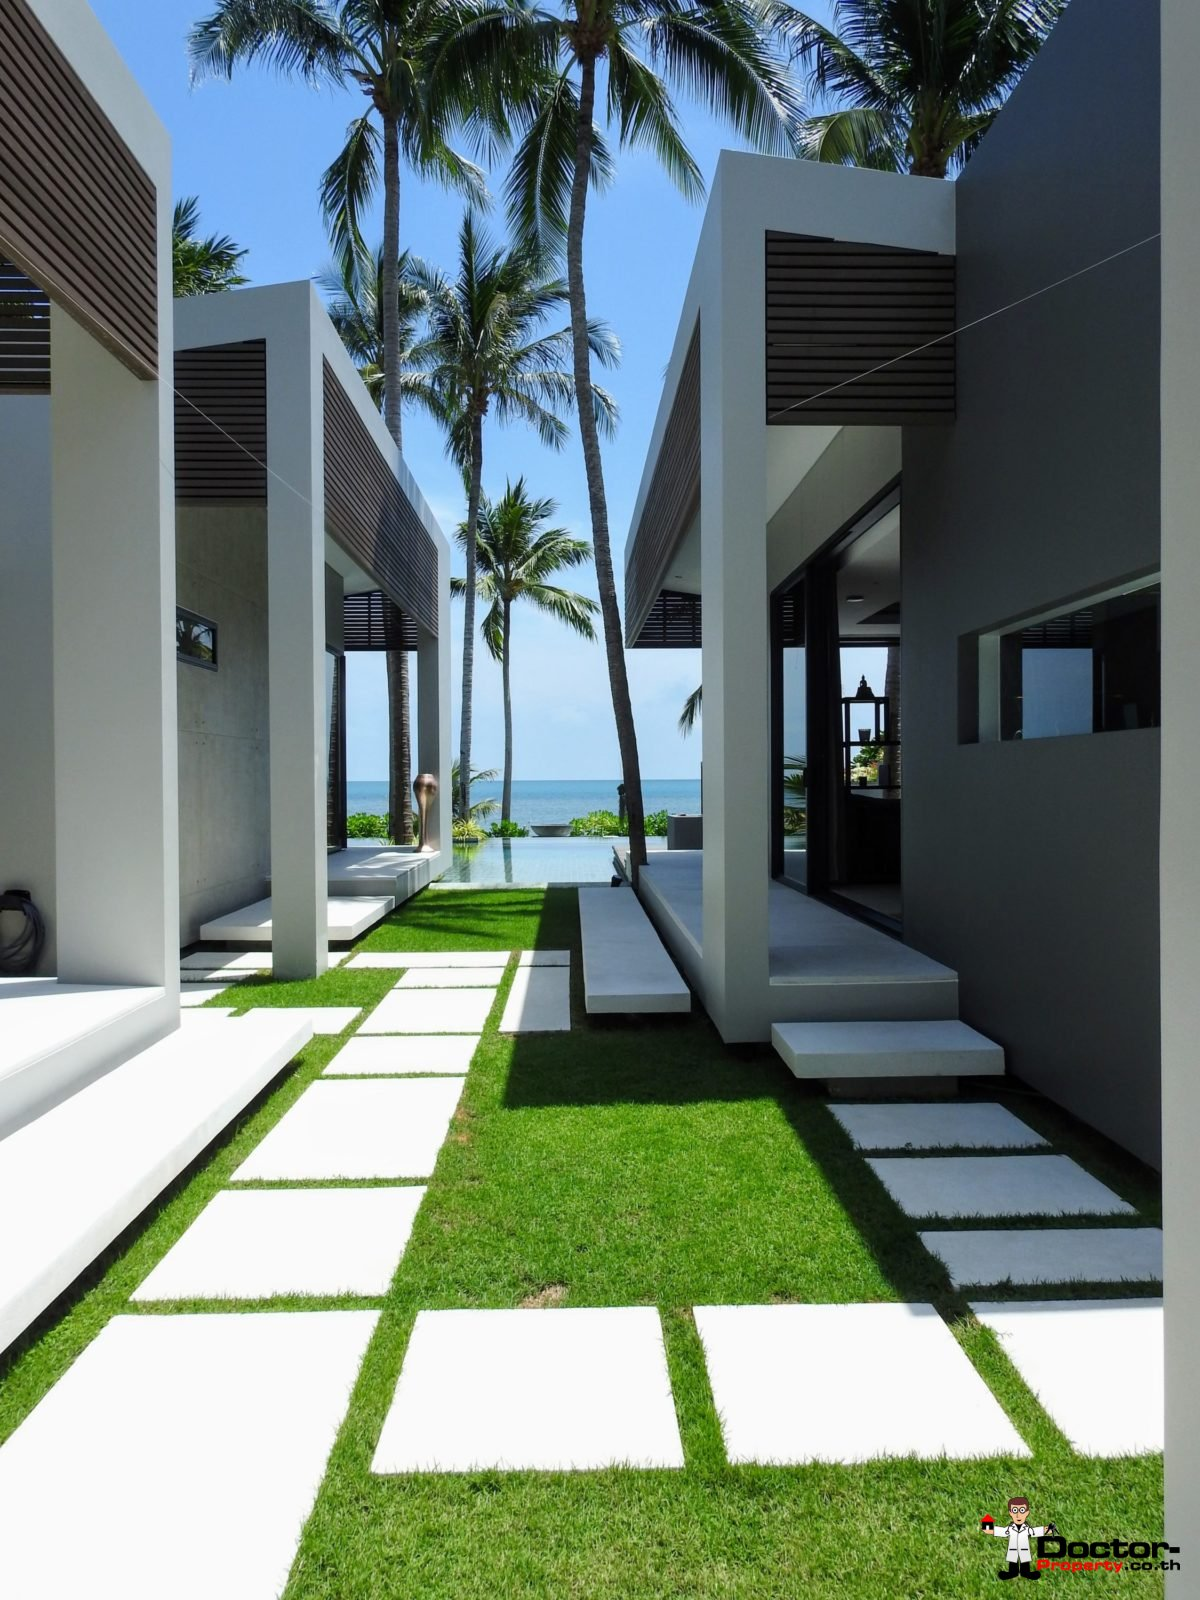 Beachfront Luxury 3 Bedroom Villa in Bang Por - Koh Samui - for sale 20